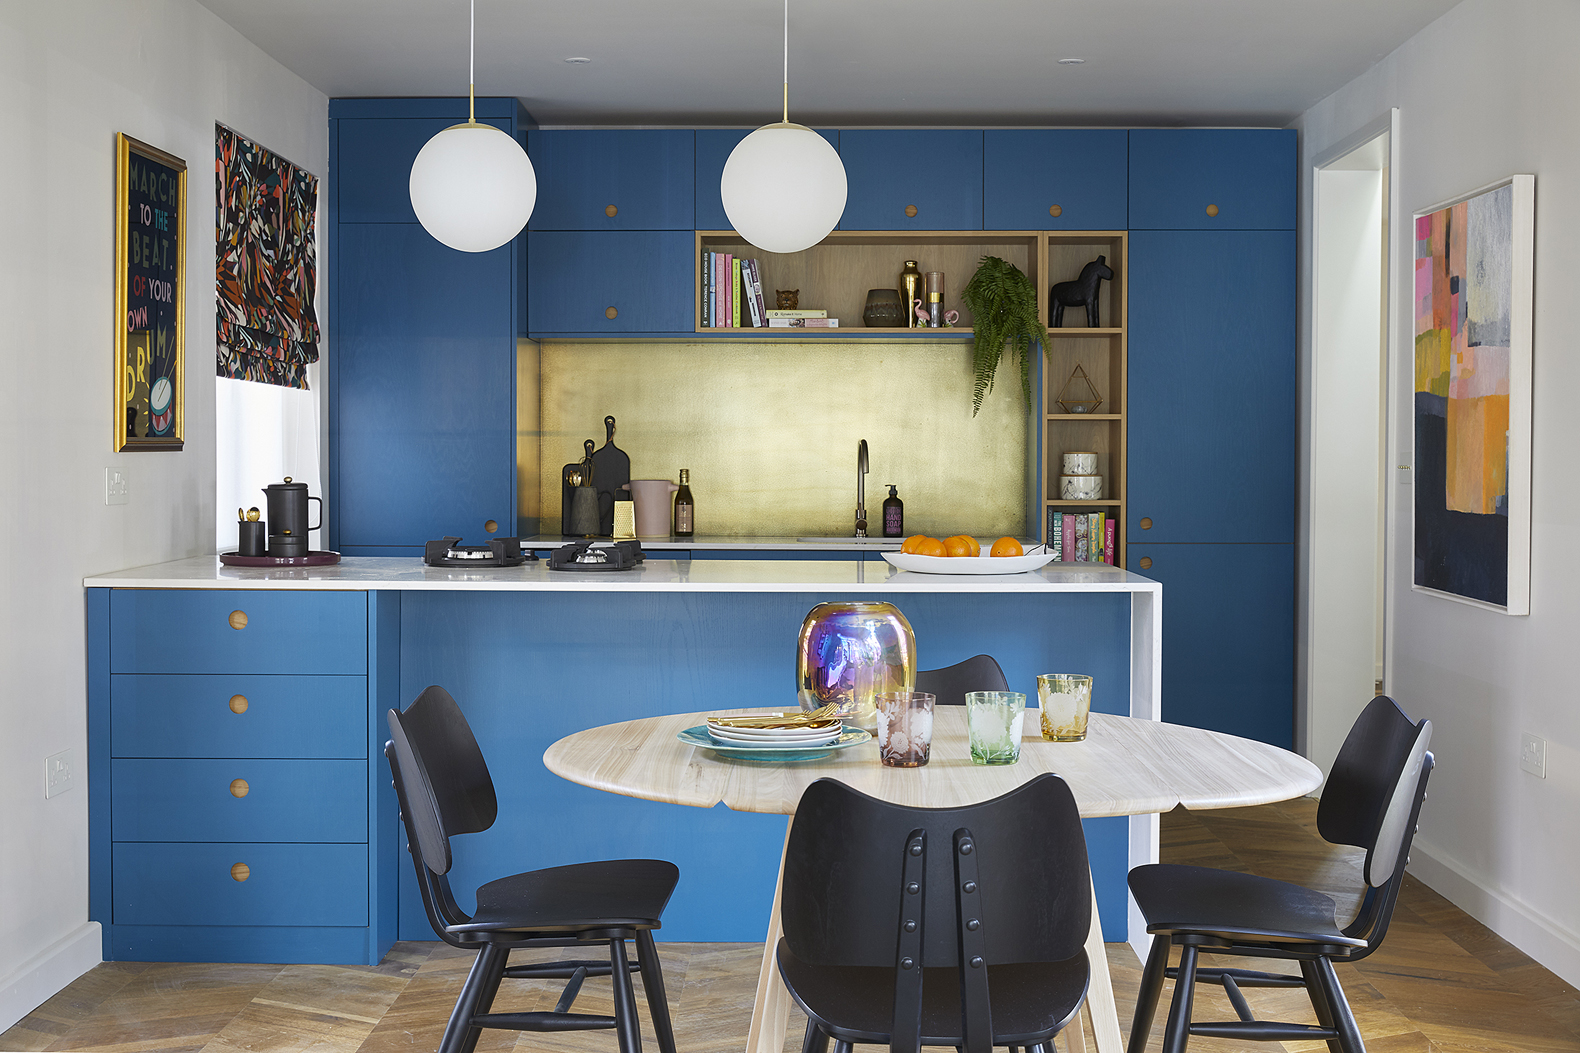 marine blue kitchen by naked kitchens designed by sophie robinson for the ideal home show. gold kitchen splash back, gold kitchen taps and ercol mid century modern table and chairs